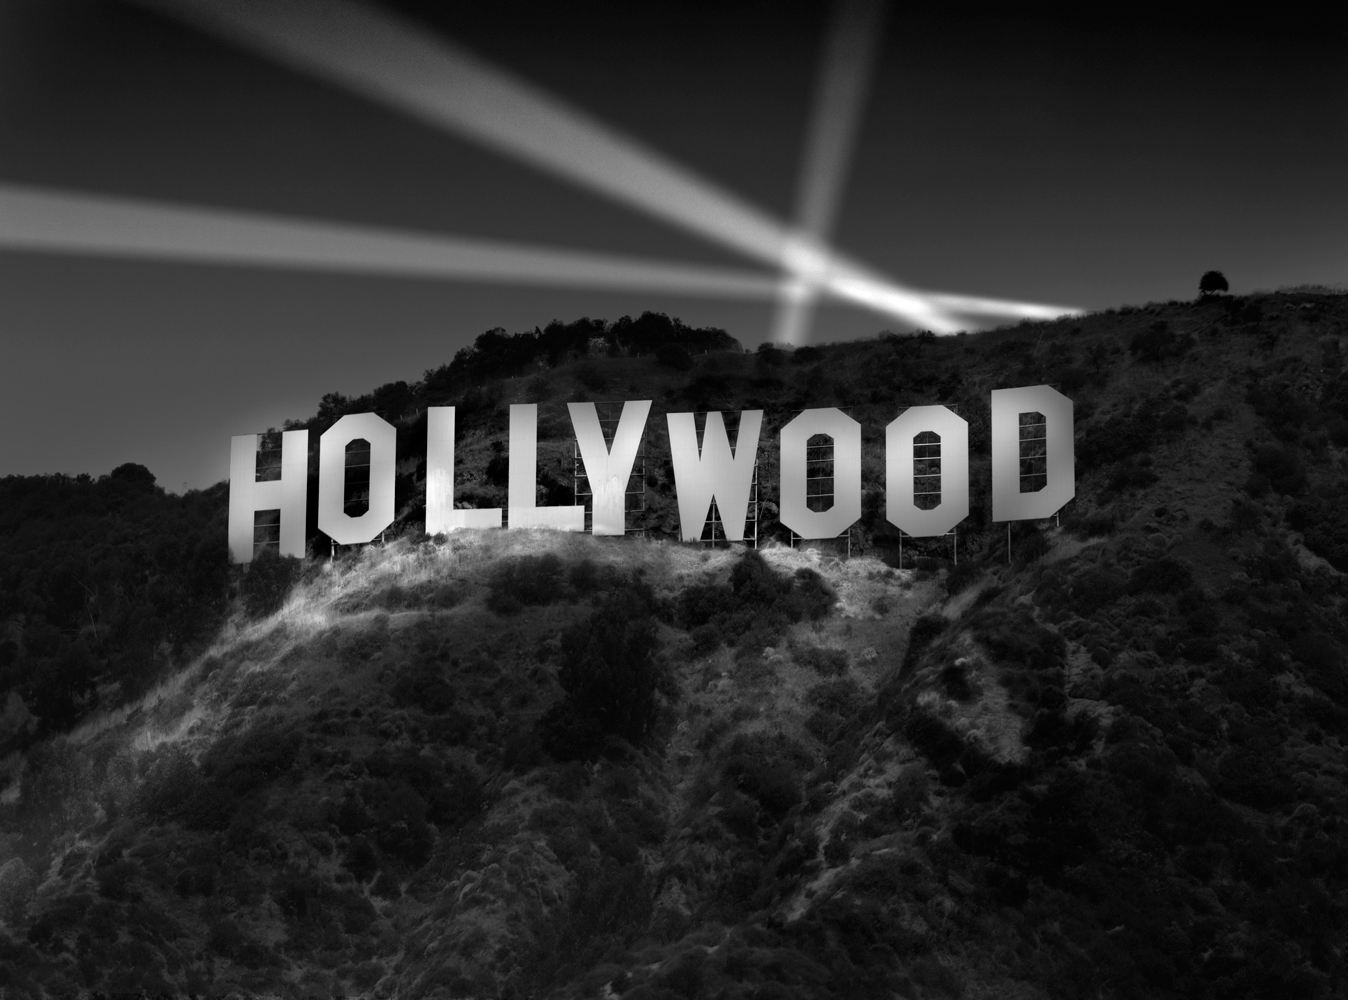 Hollywood sign, Richard Lund, Hollywood sign at night, Akira Yoshimura